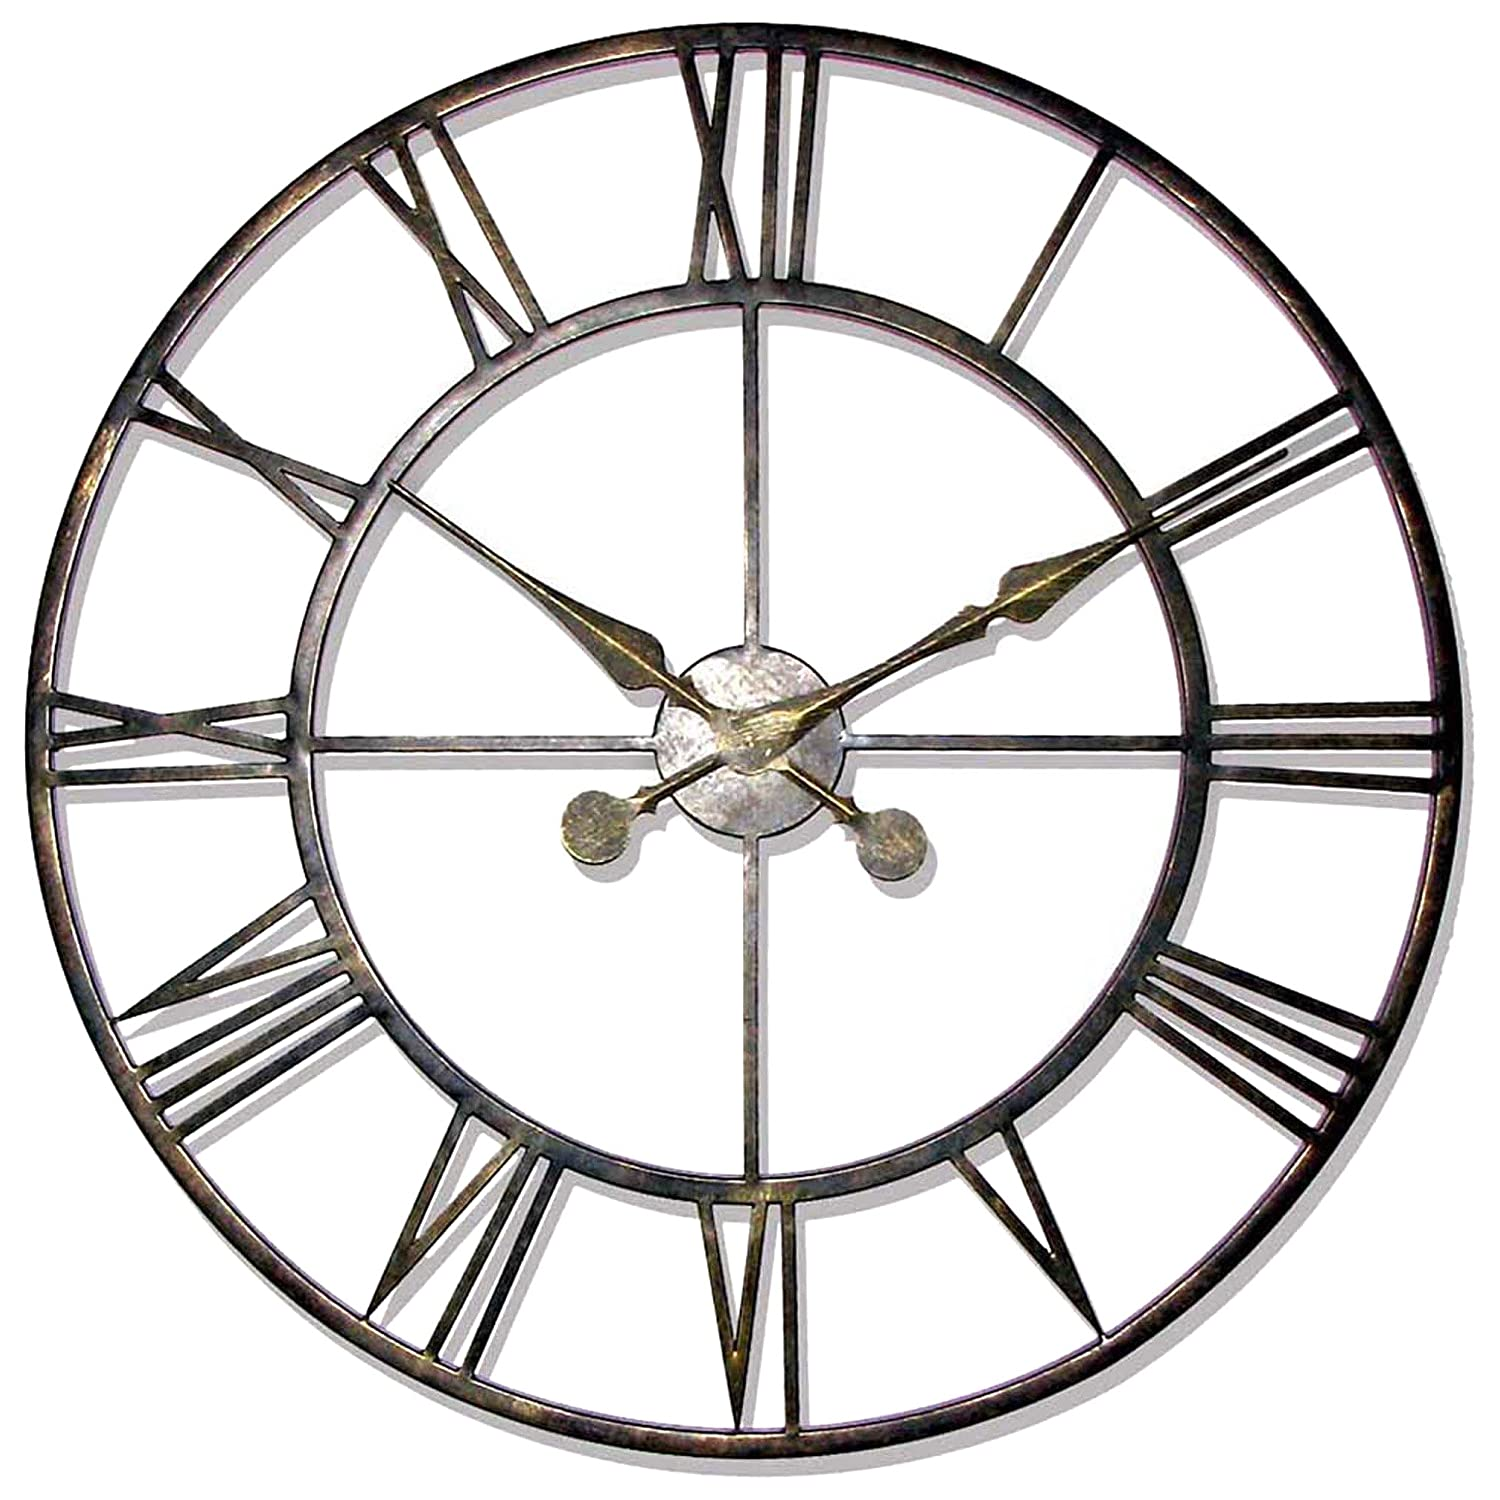 Giant Clock Decor Stylish Large Wall Clocks Fun And Fashionable Home